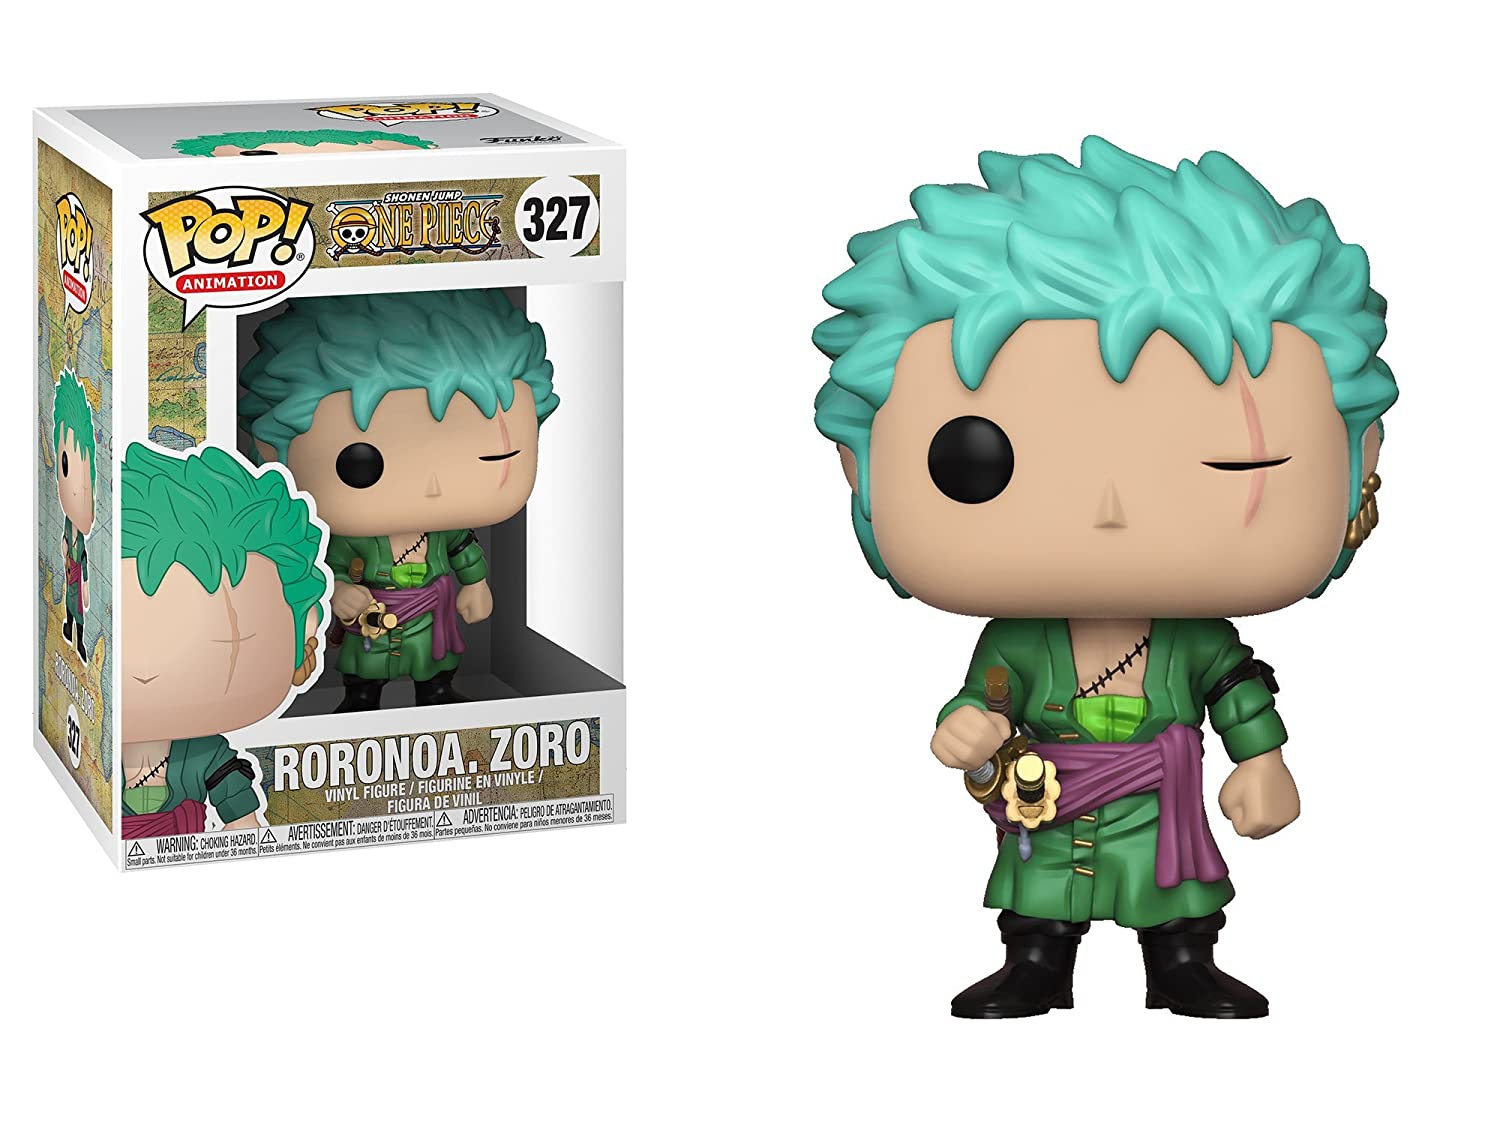 Amazon.com: Funko Pop! Anime: Onepiece - Zoro Collectible ...